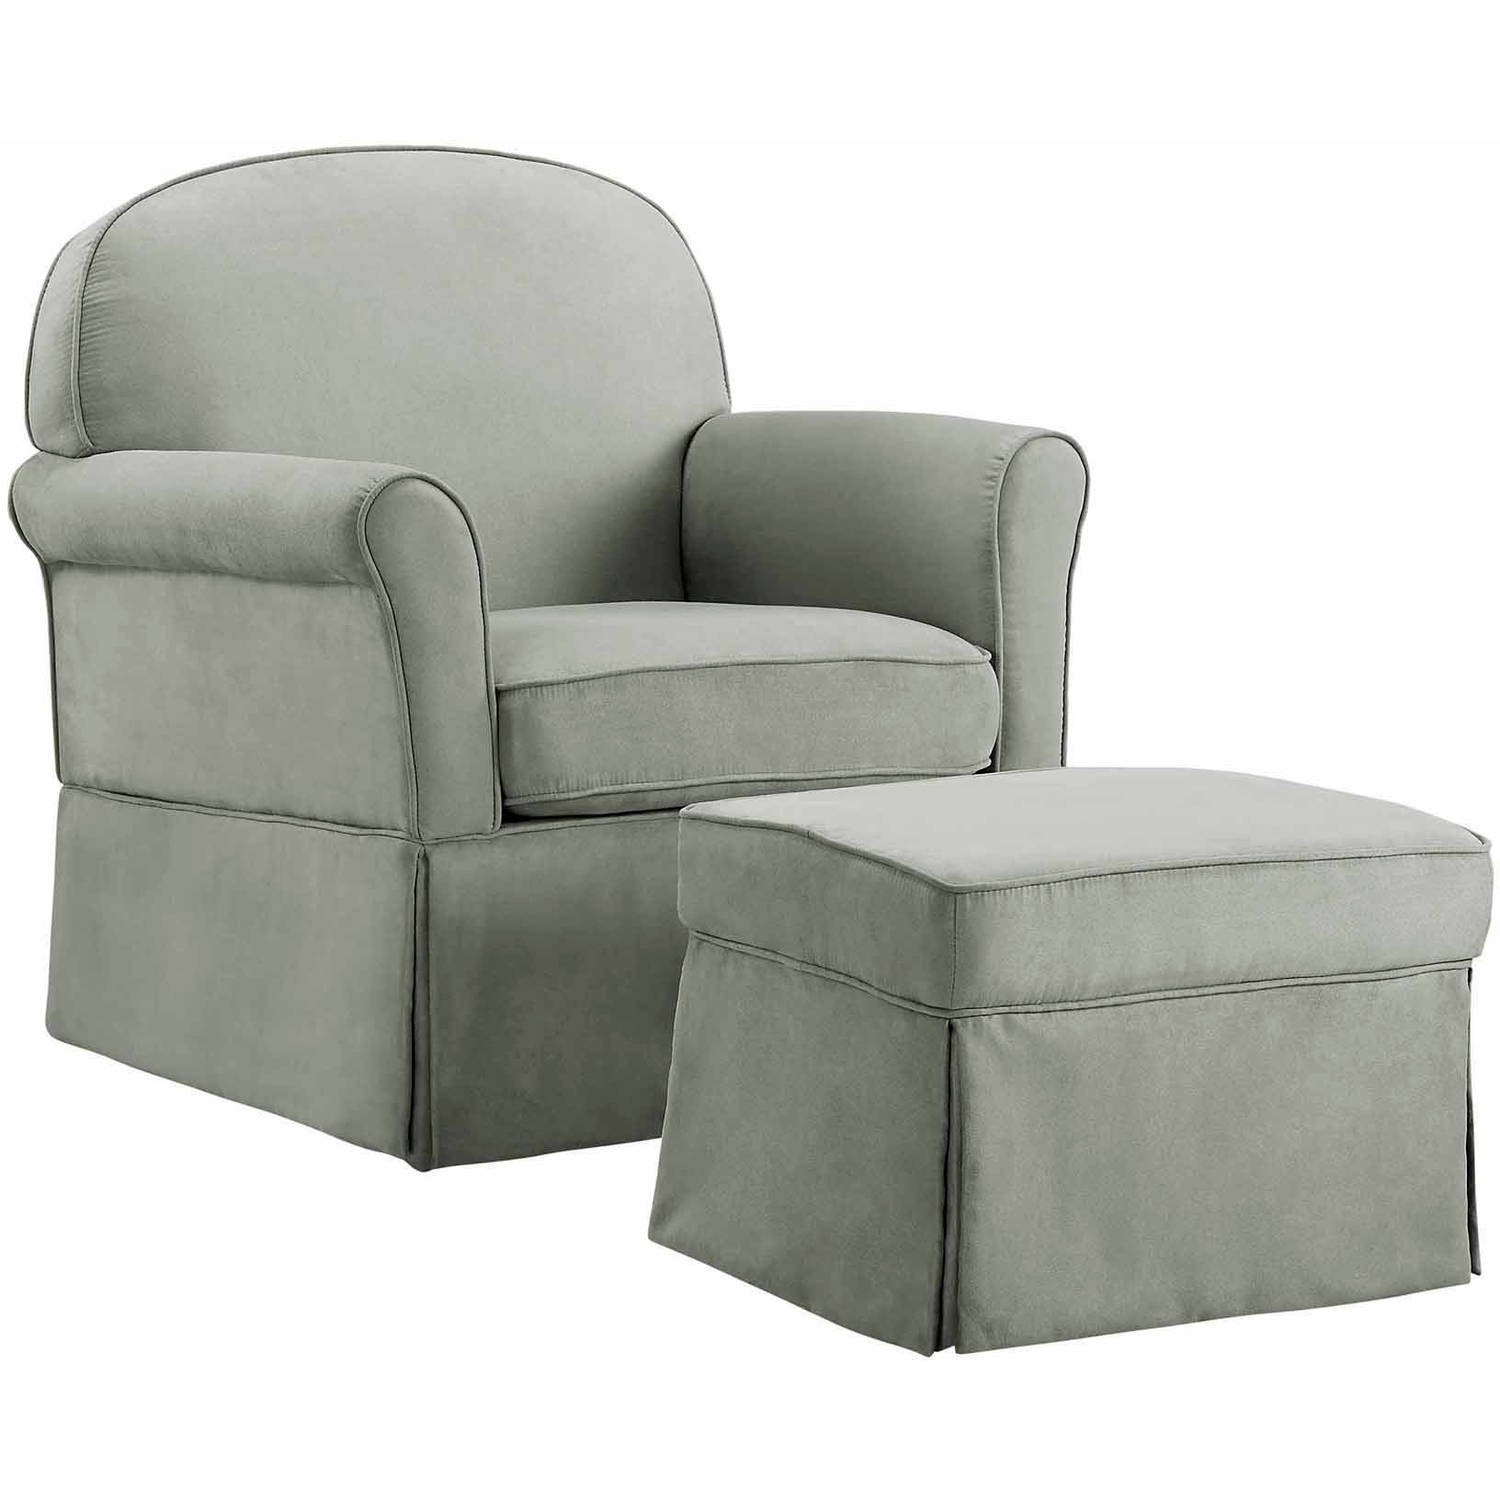 Baby Relax Evan Swivel Glider and Ottoman Gray by Baby Relax